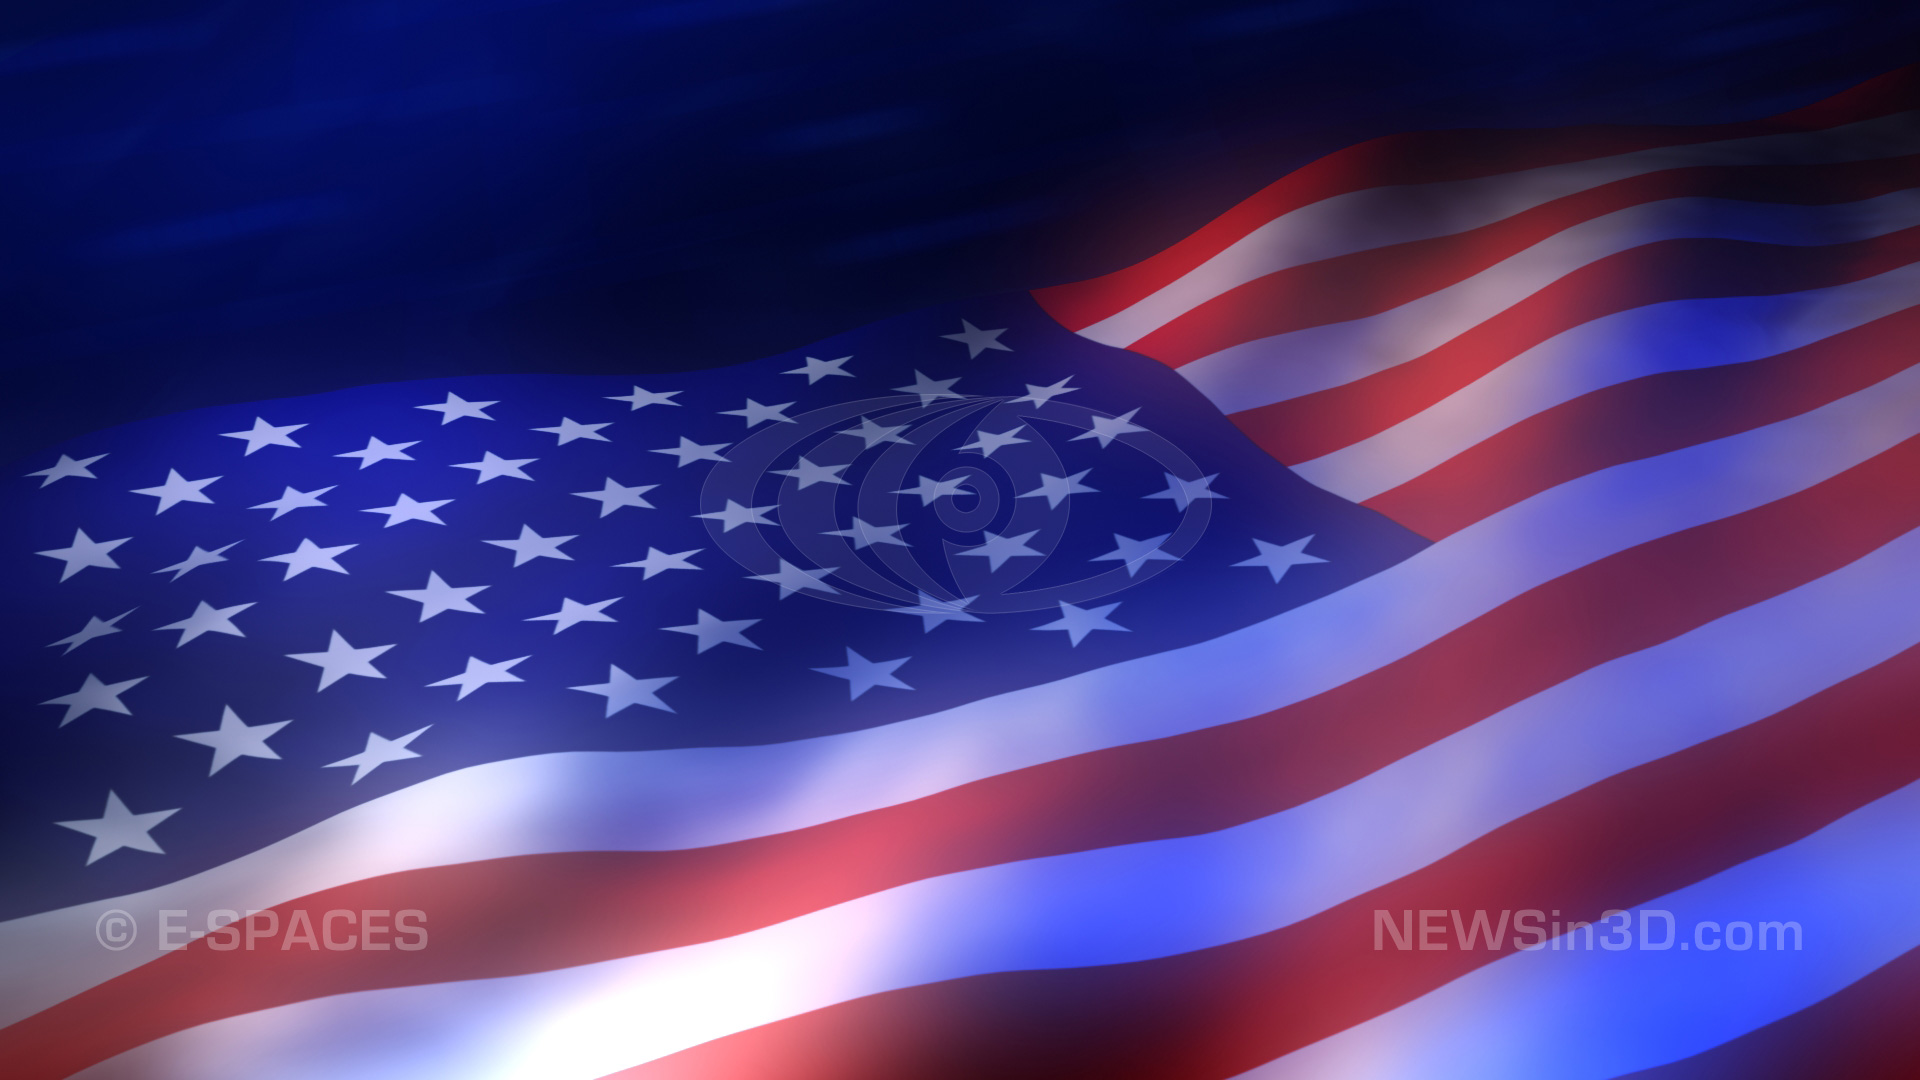 American Flag Background wallpaper   126848 1920x1080